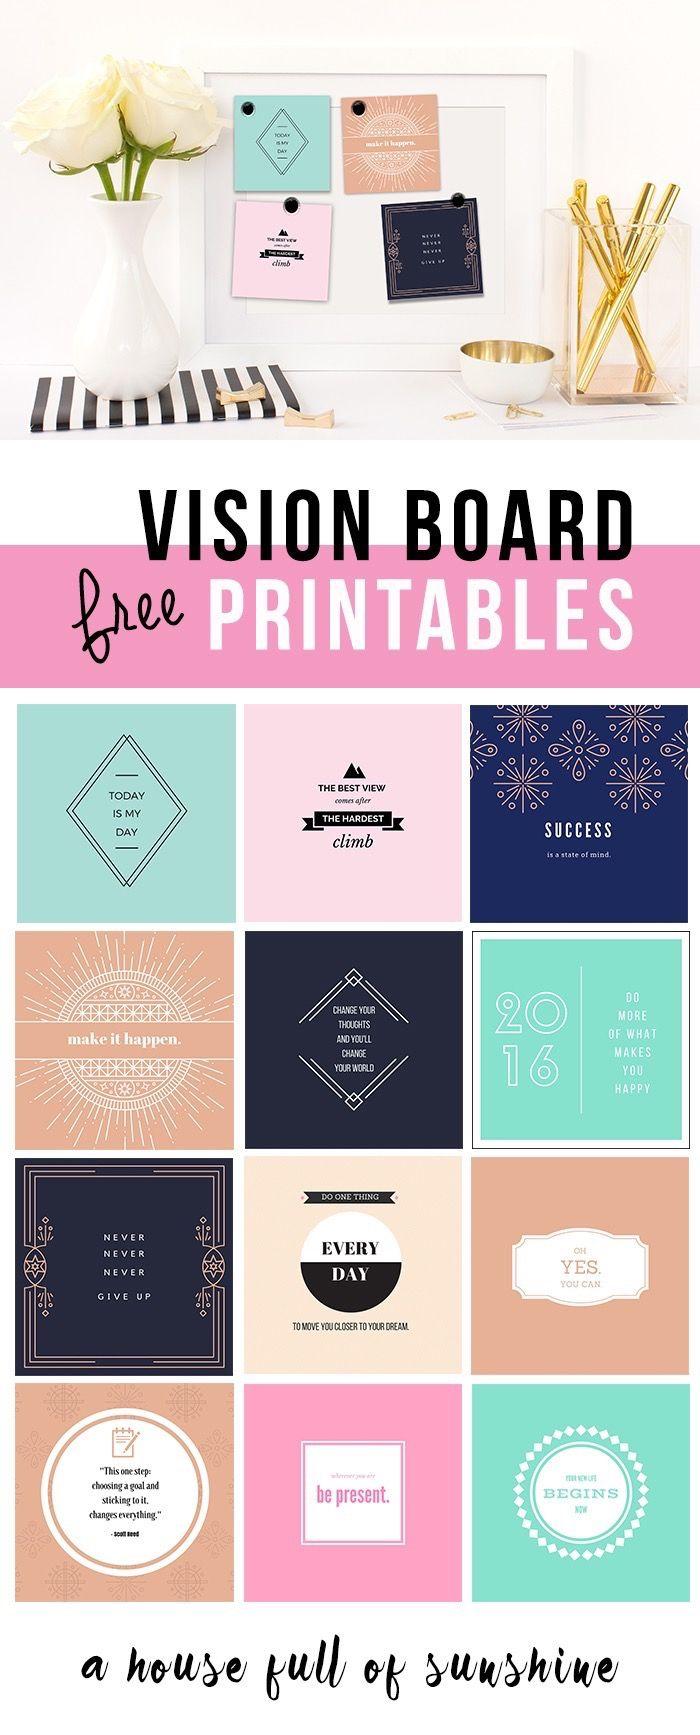 Free Vision Board Printables #247moms                                                                                                                                                                                 More